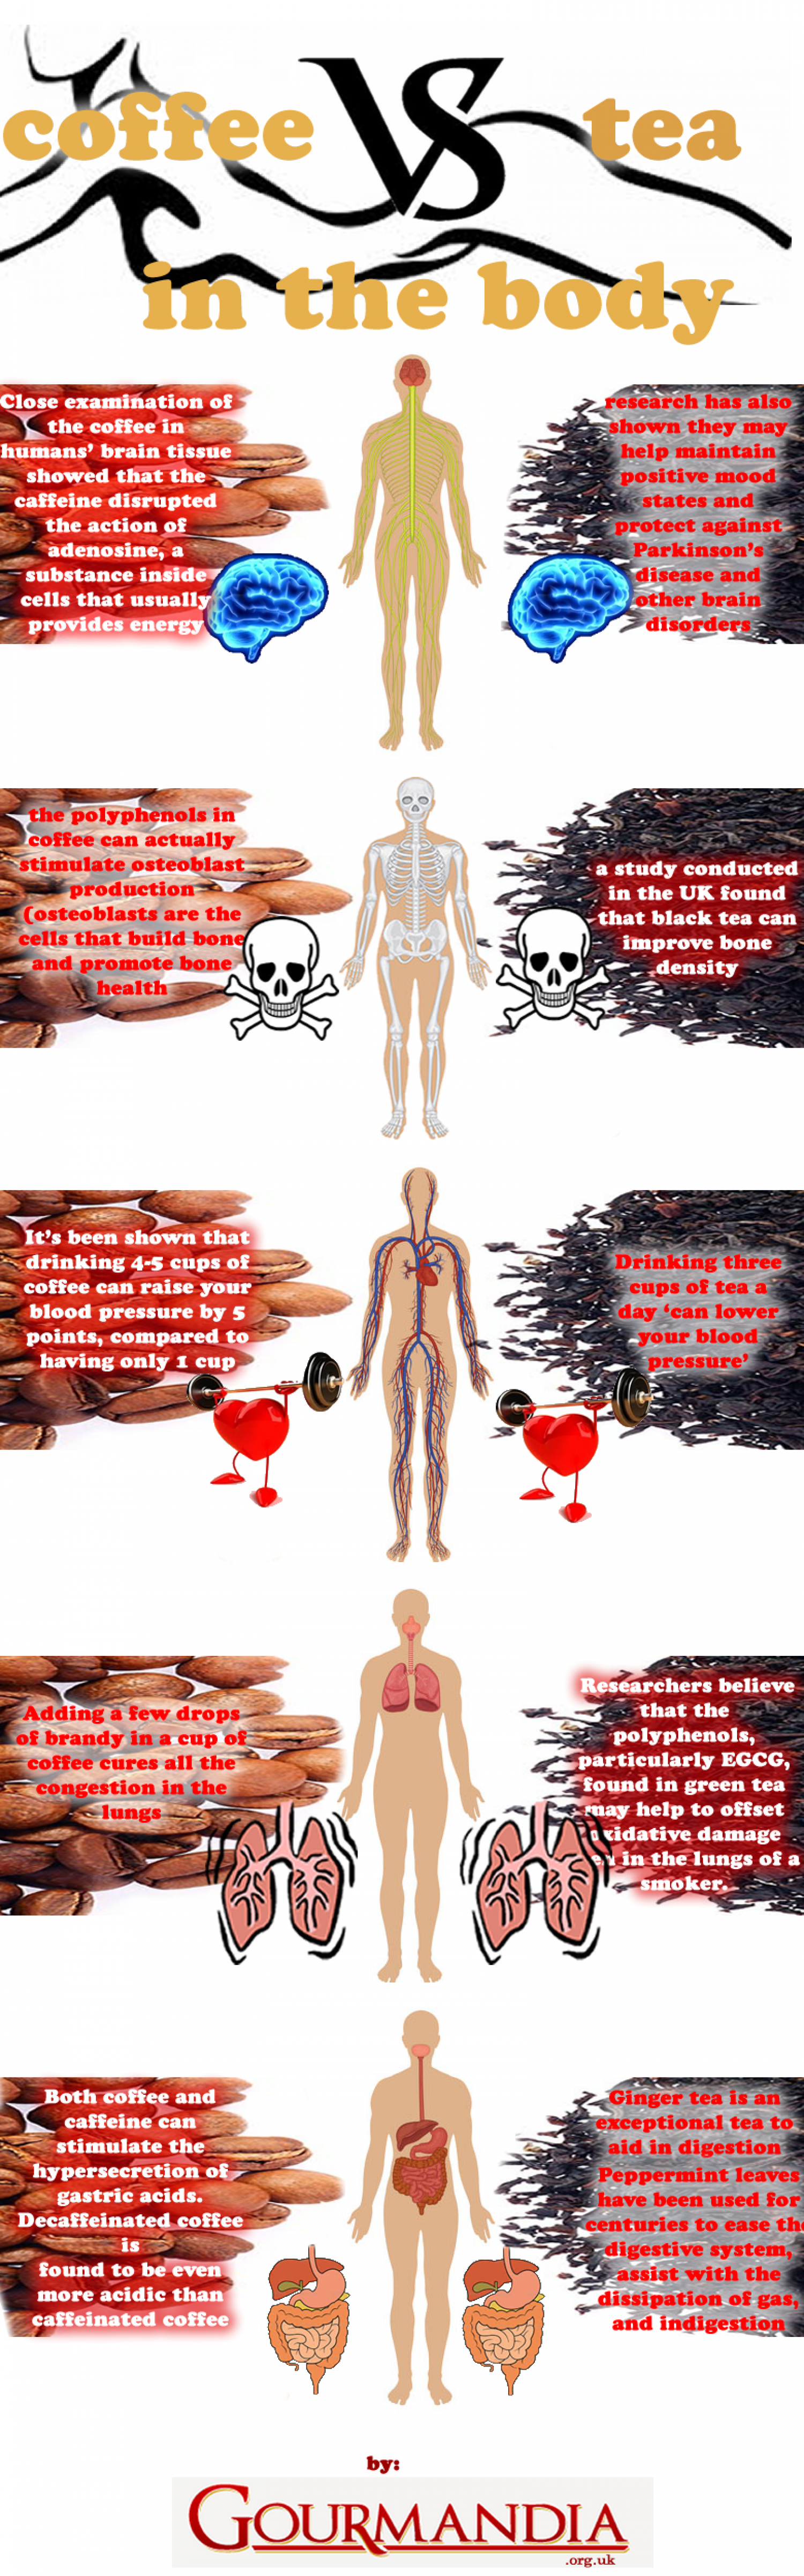 Coffee Vs. Tea in the Body Infographic